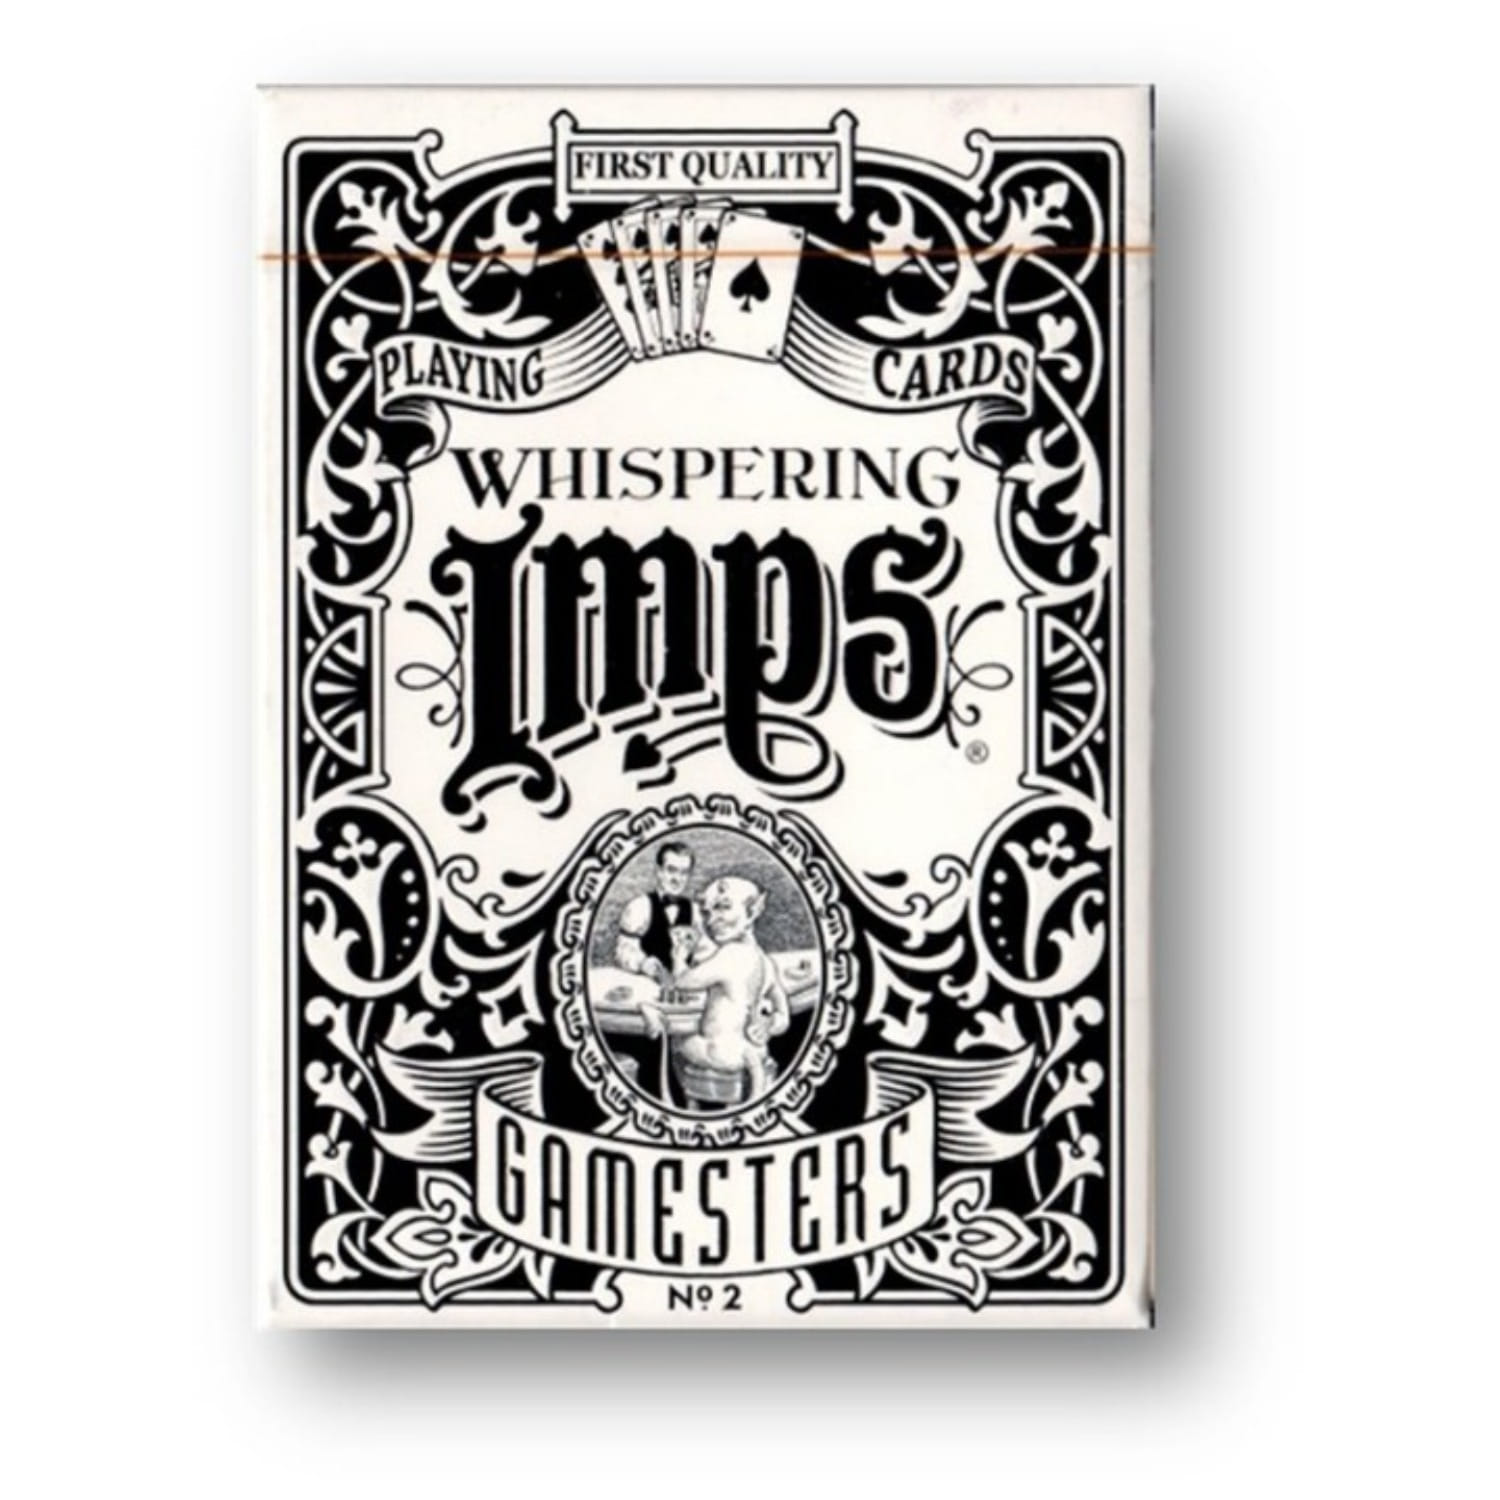 게임스터 스탠다드(블랙)Gamesters Standard Edition Playing Cards (Black) by Whispering Imps